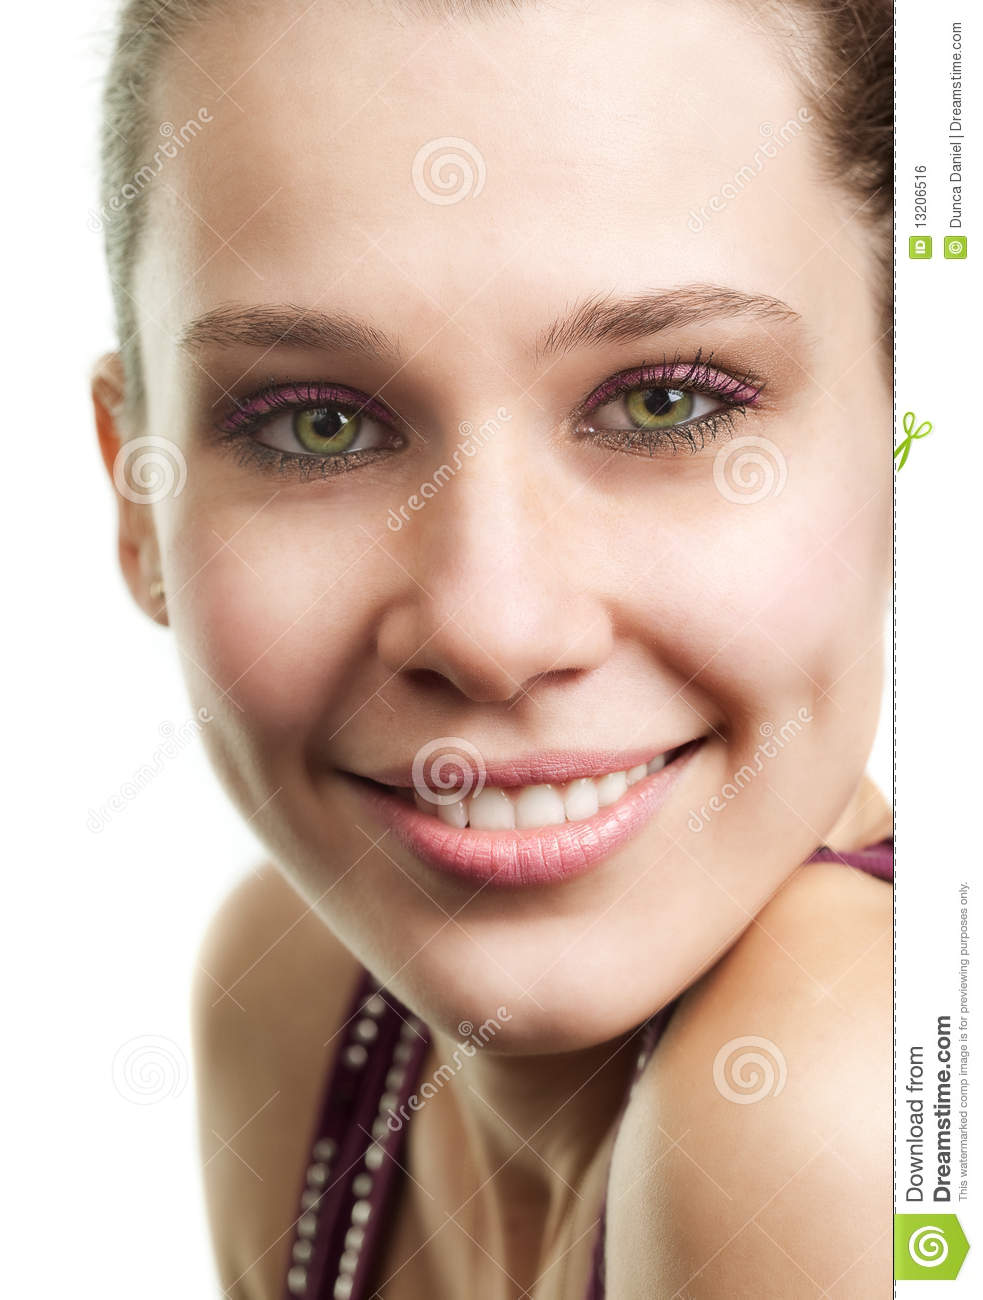 http://thumbs.dreamstime.com/z/face-happy-woman-beautiful-smile-13206516.jpg